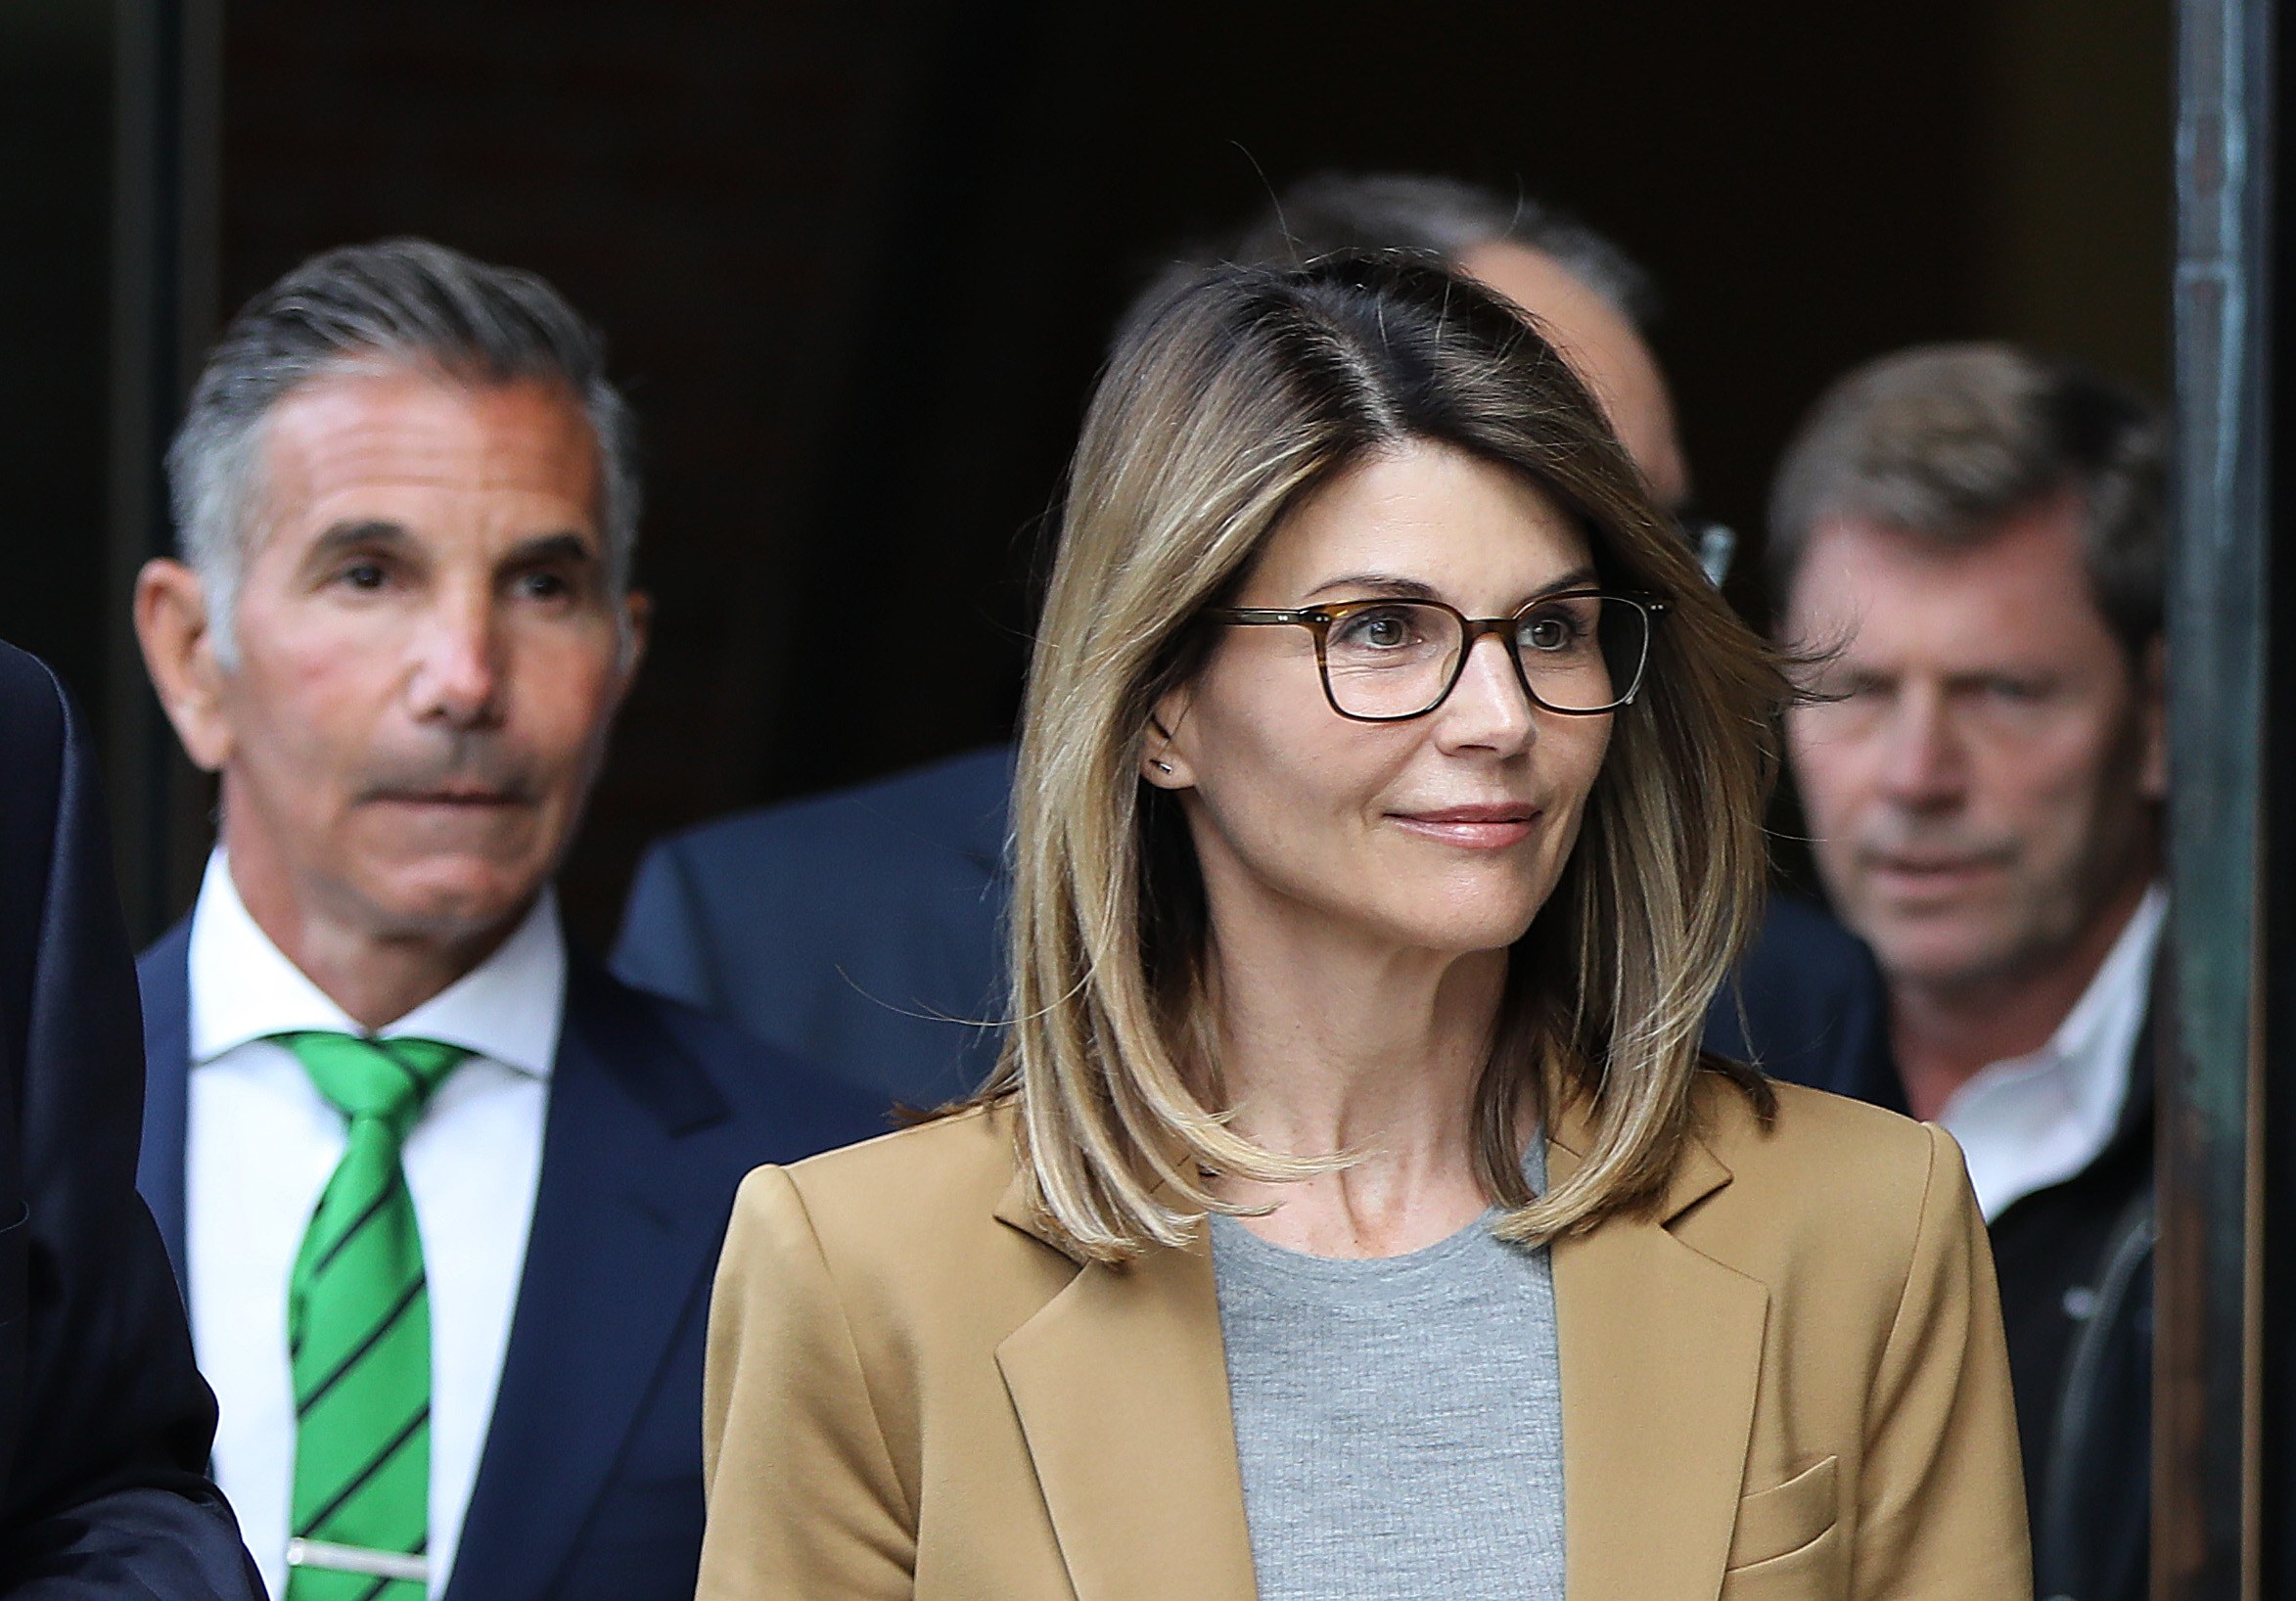 This Is How Lori Loughlin Reportedly Met Rick Singer, the Guy Behind the College Admissions Scam